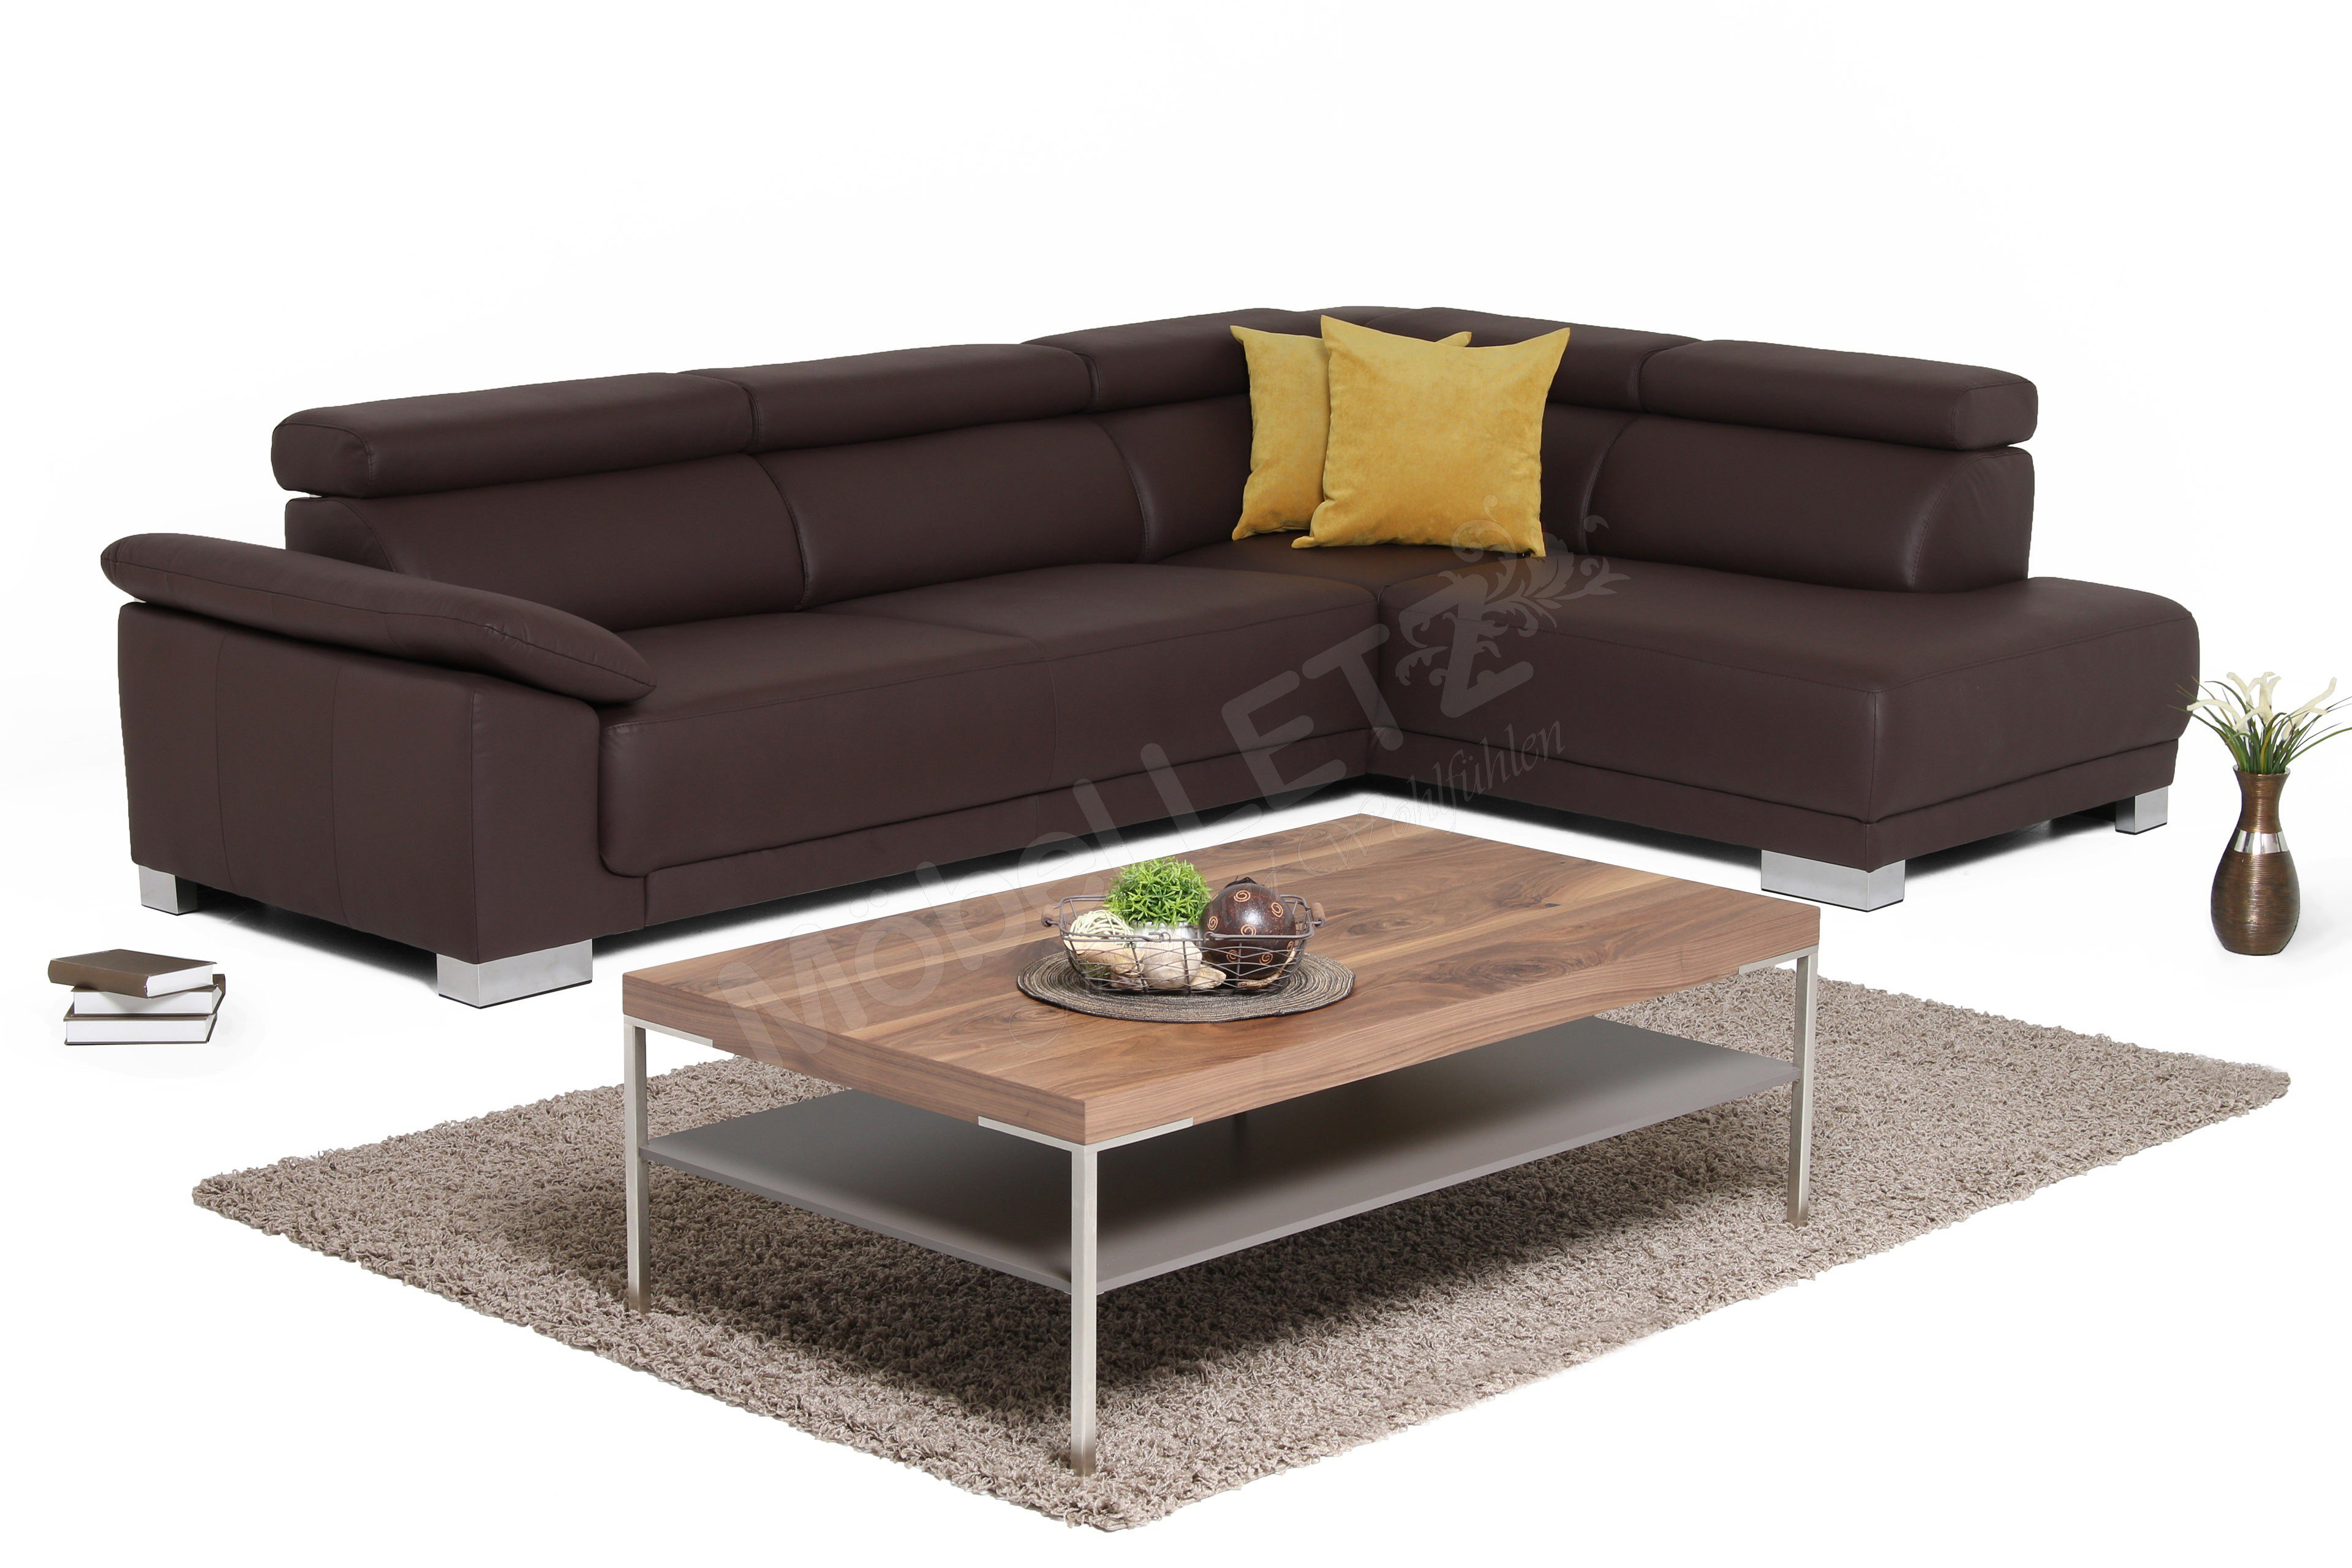 candy emporia ecksofa in braun m bel letz ihr online shop. Black Bedroom Furniture Sets. Home Design Ideas